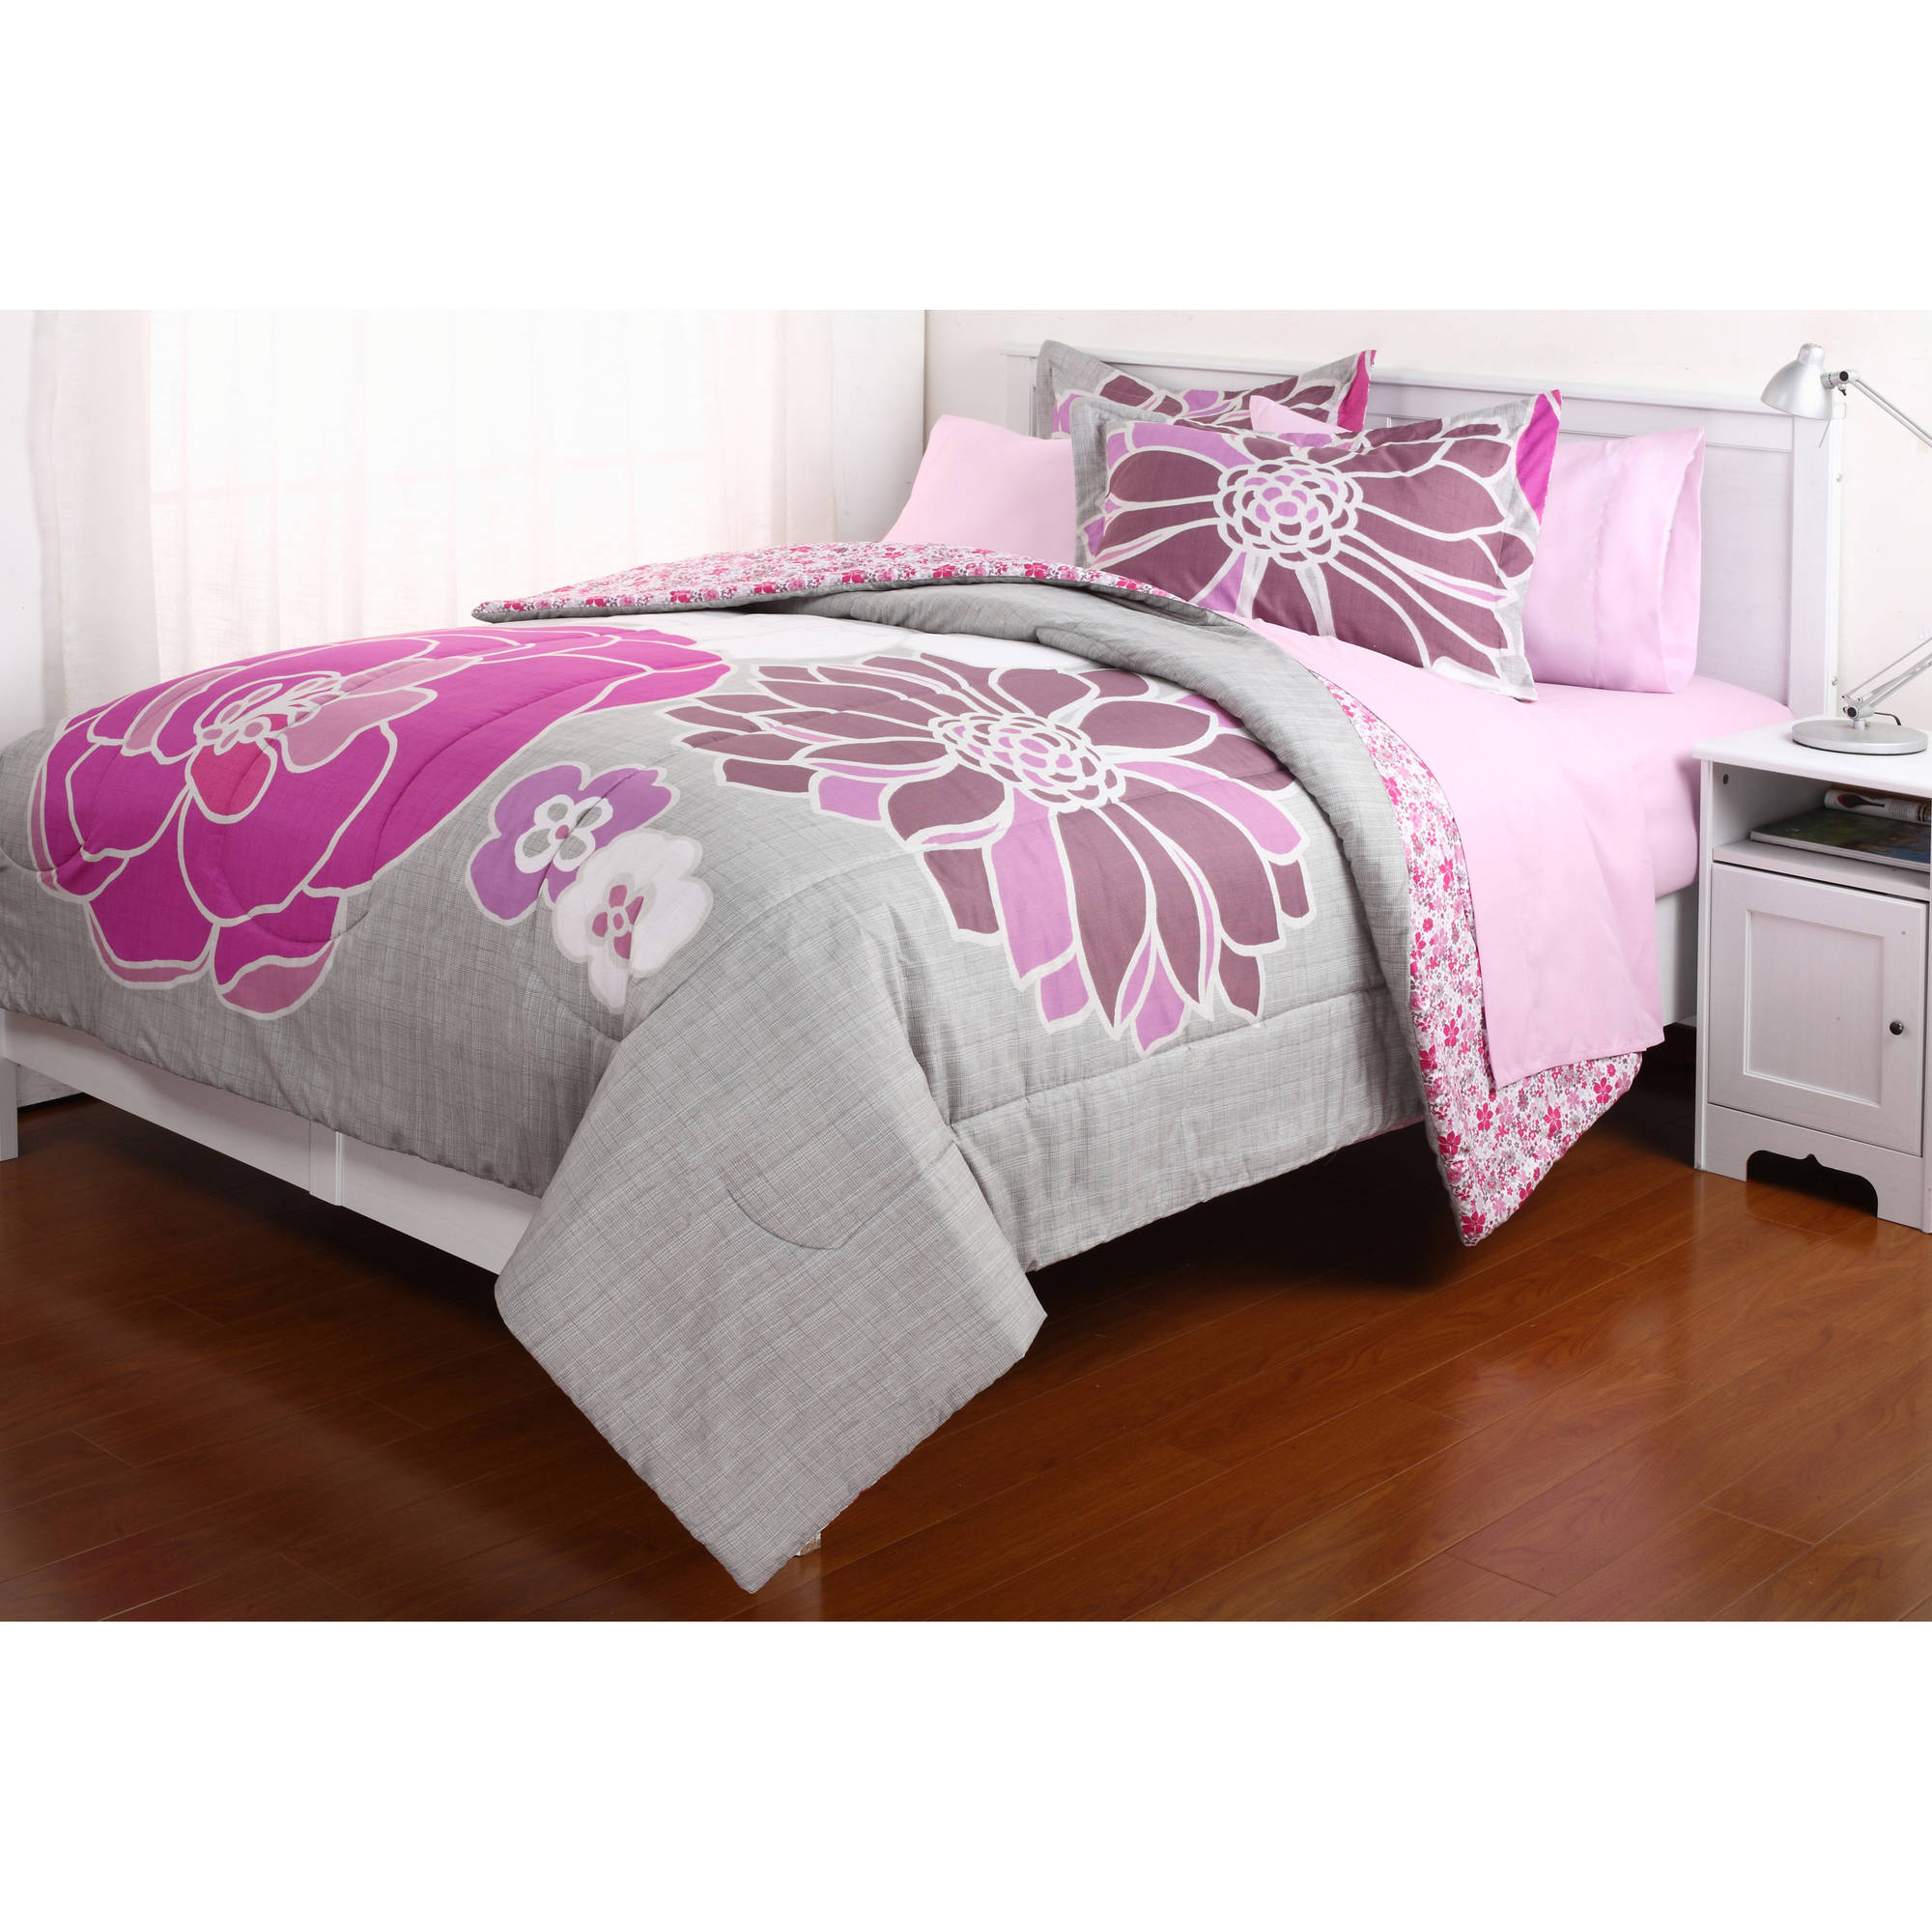 concept size of full medallion black nordstrom grey comforter cheap peri twin xl image sets set collection unusual bedding pink home